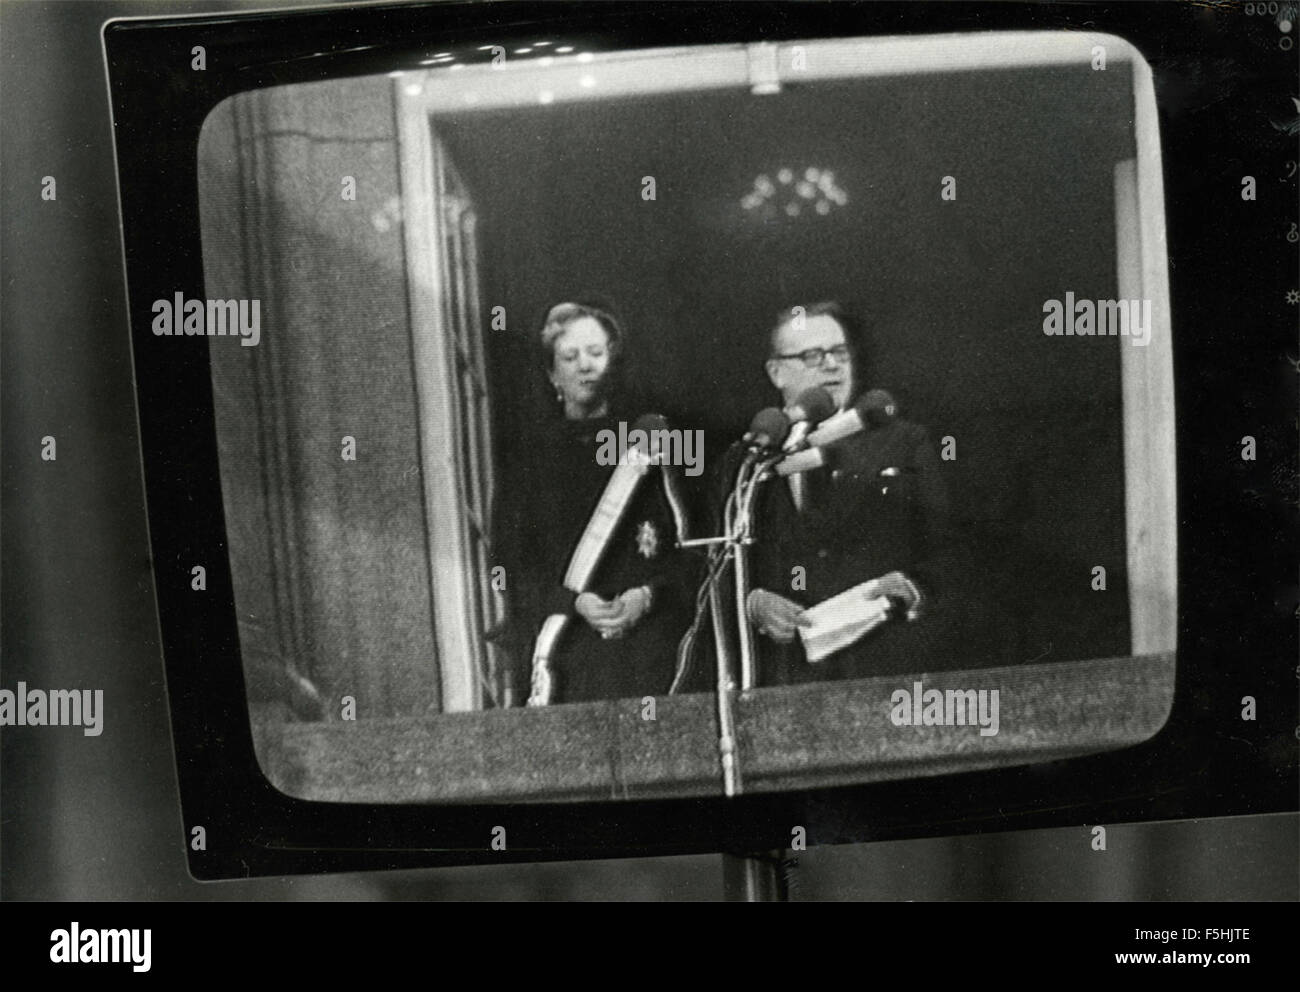 The royals of Denmark in TV - Stock Image